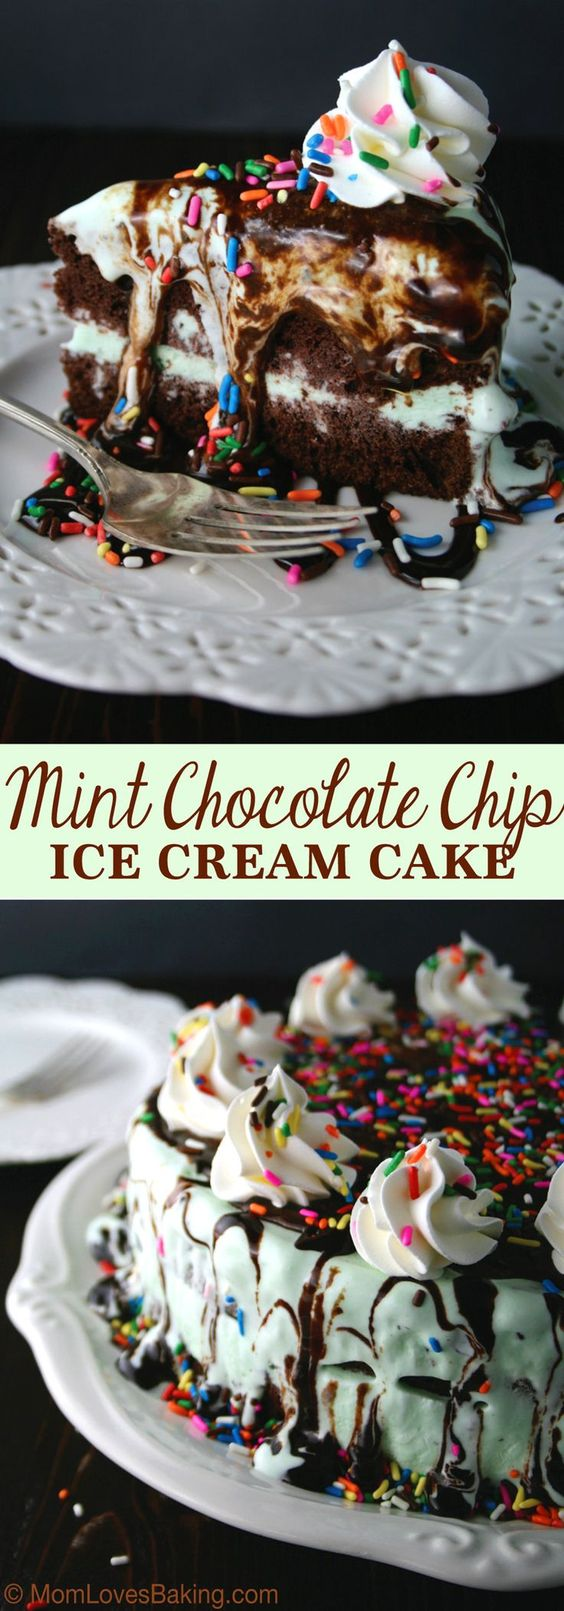 Mint Chocolate Chip Ice Cream Cake is a super easy, four layer cake topped with chocolate syrup and sprinkles.